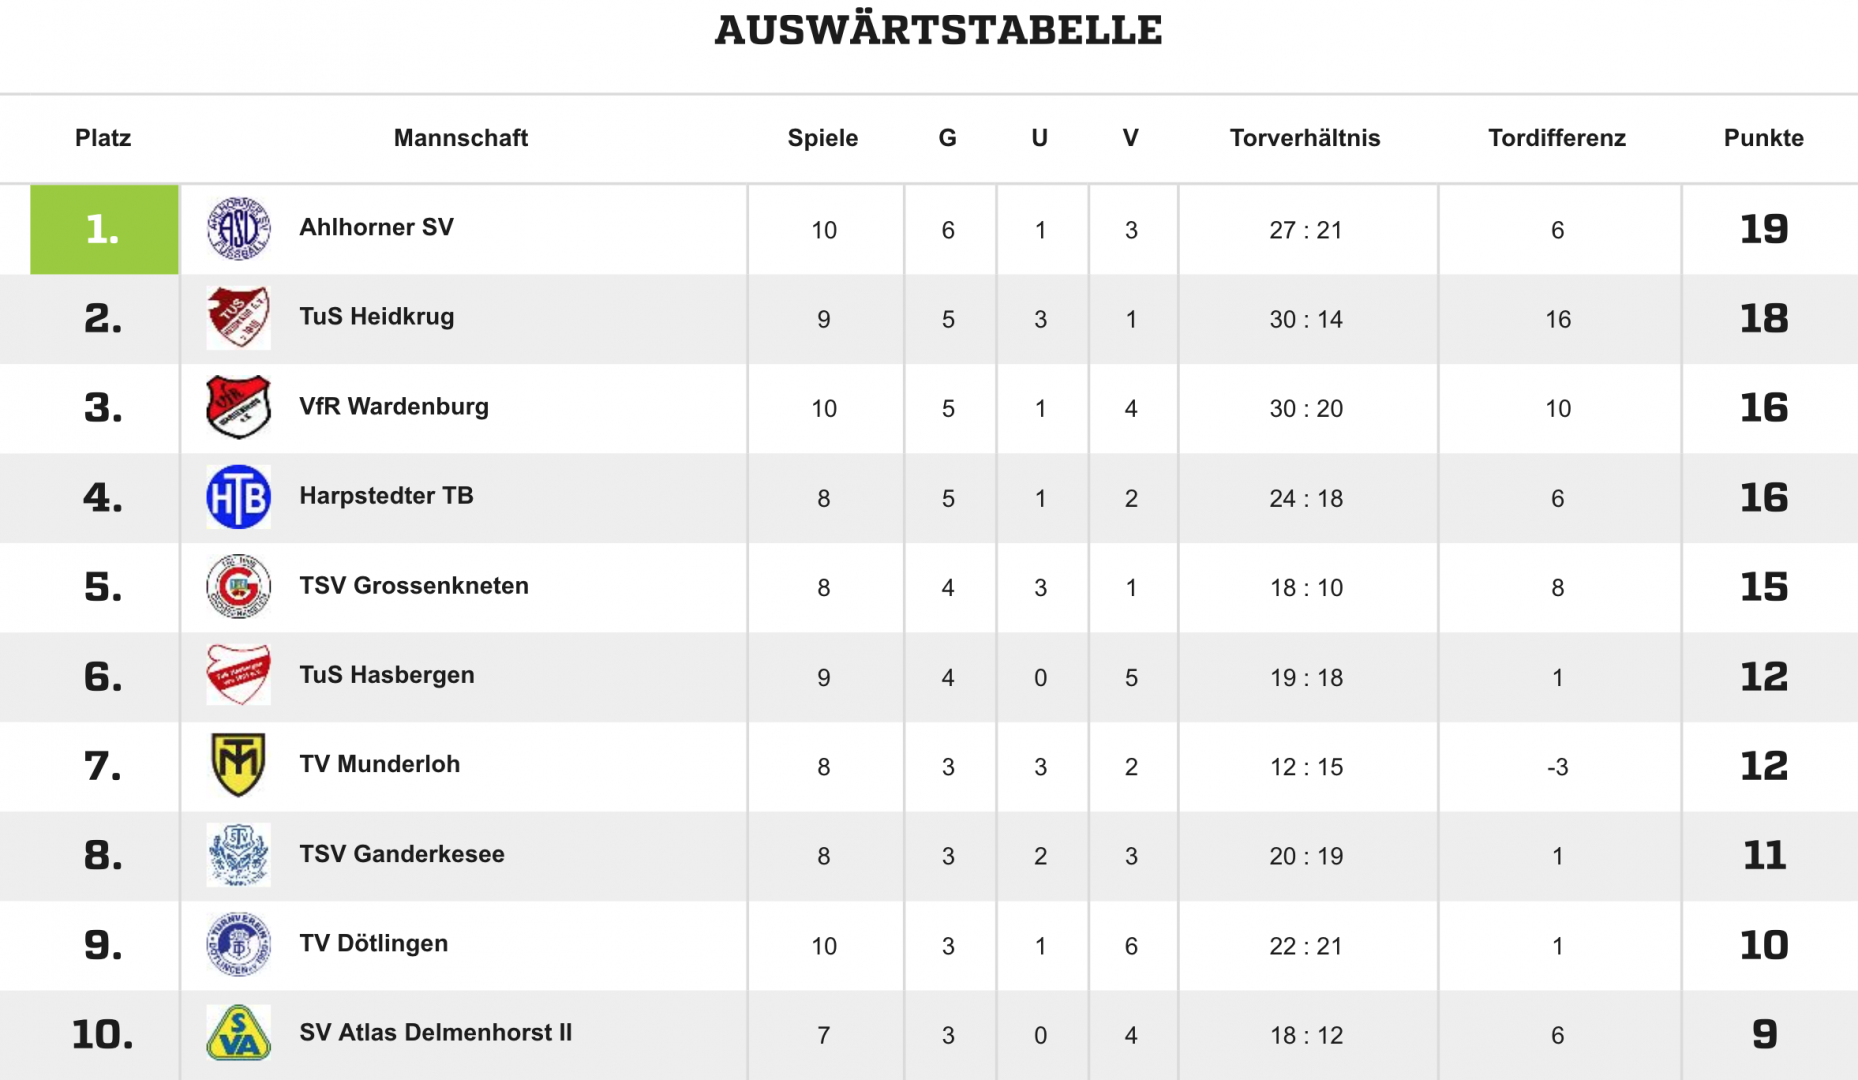 tabelle_Auswaerts_hinrunde_18.png